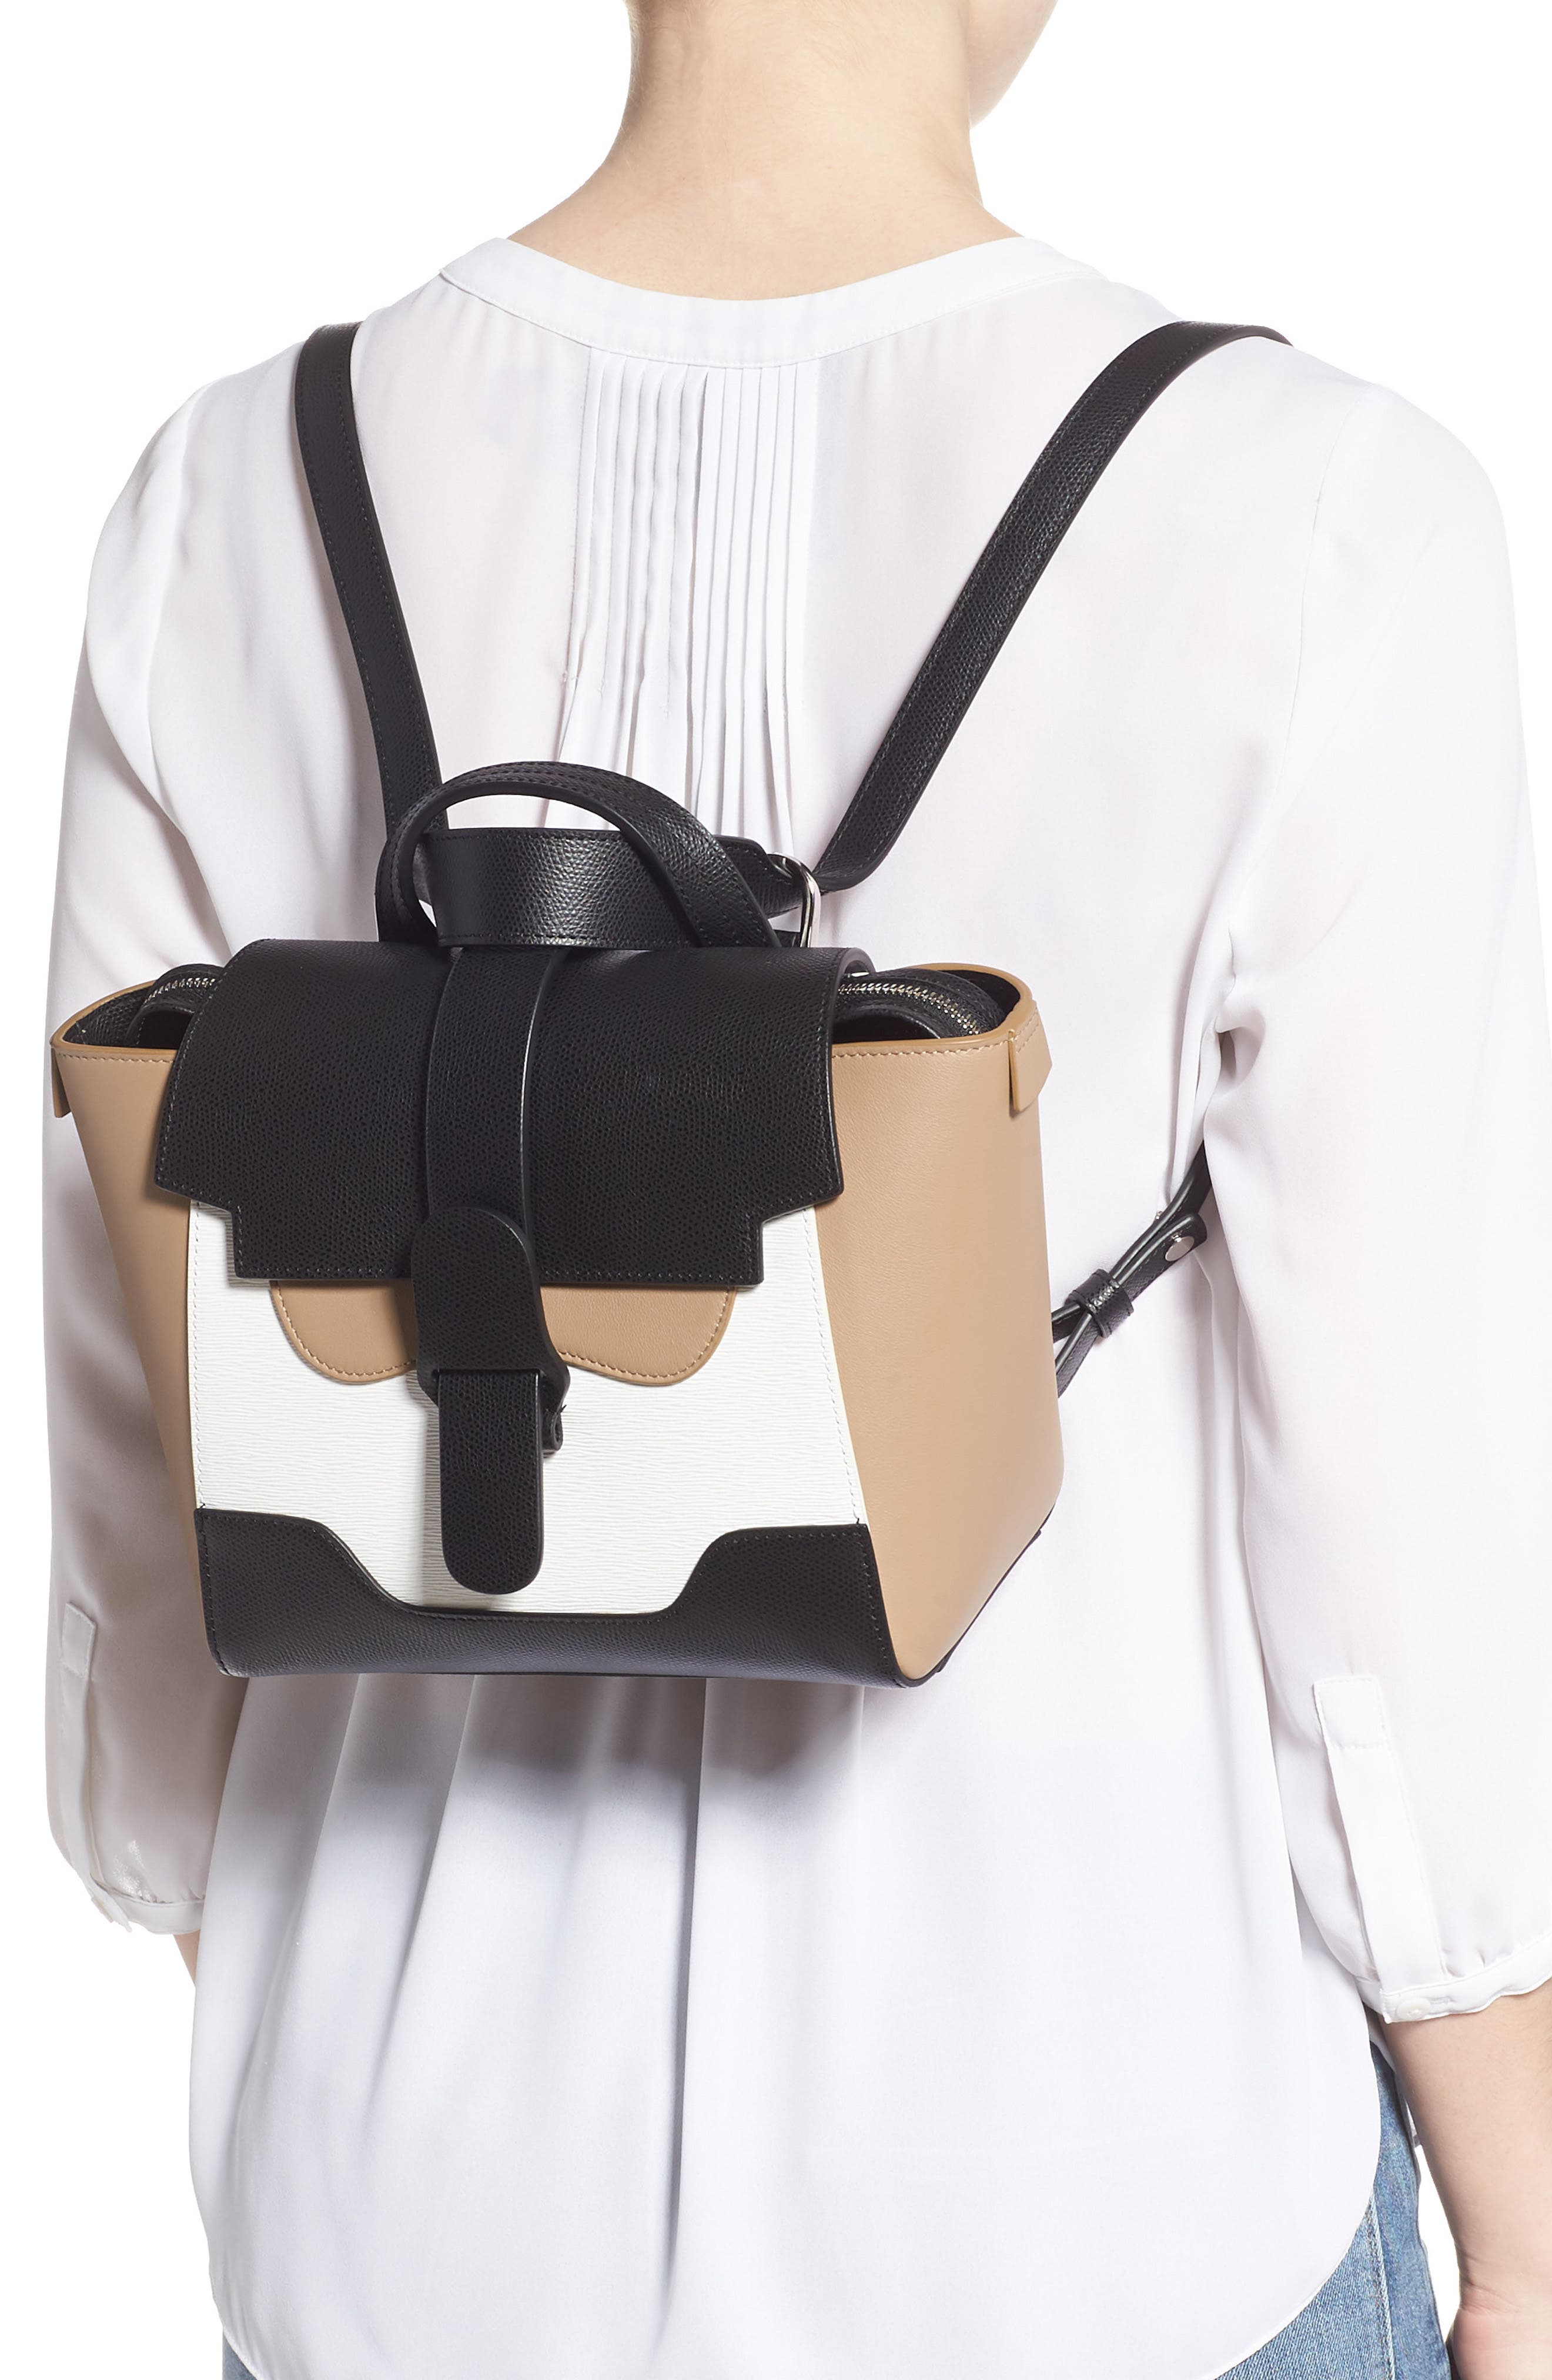 Mini Maestra Colorblock Leather Satchel,                             Alternate thumbnail 2, color,                             BLACK/ WHITE/ CHESTNUT